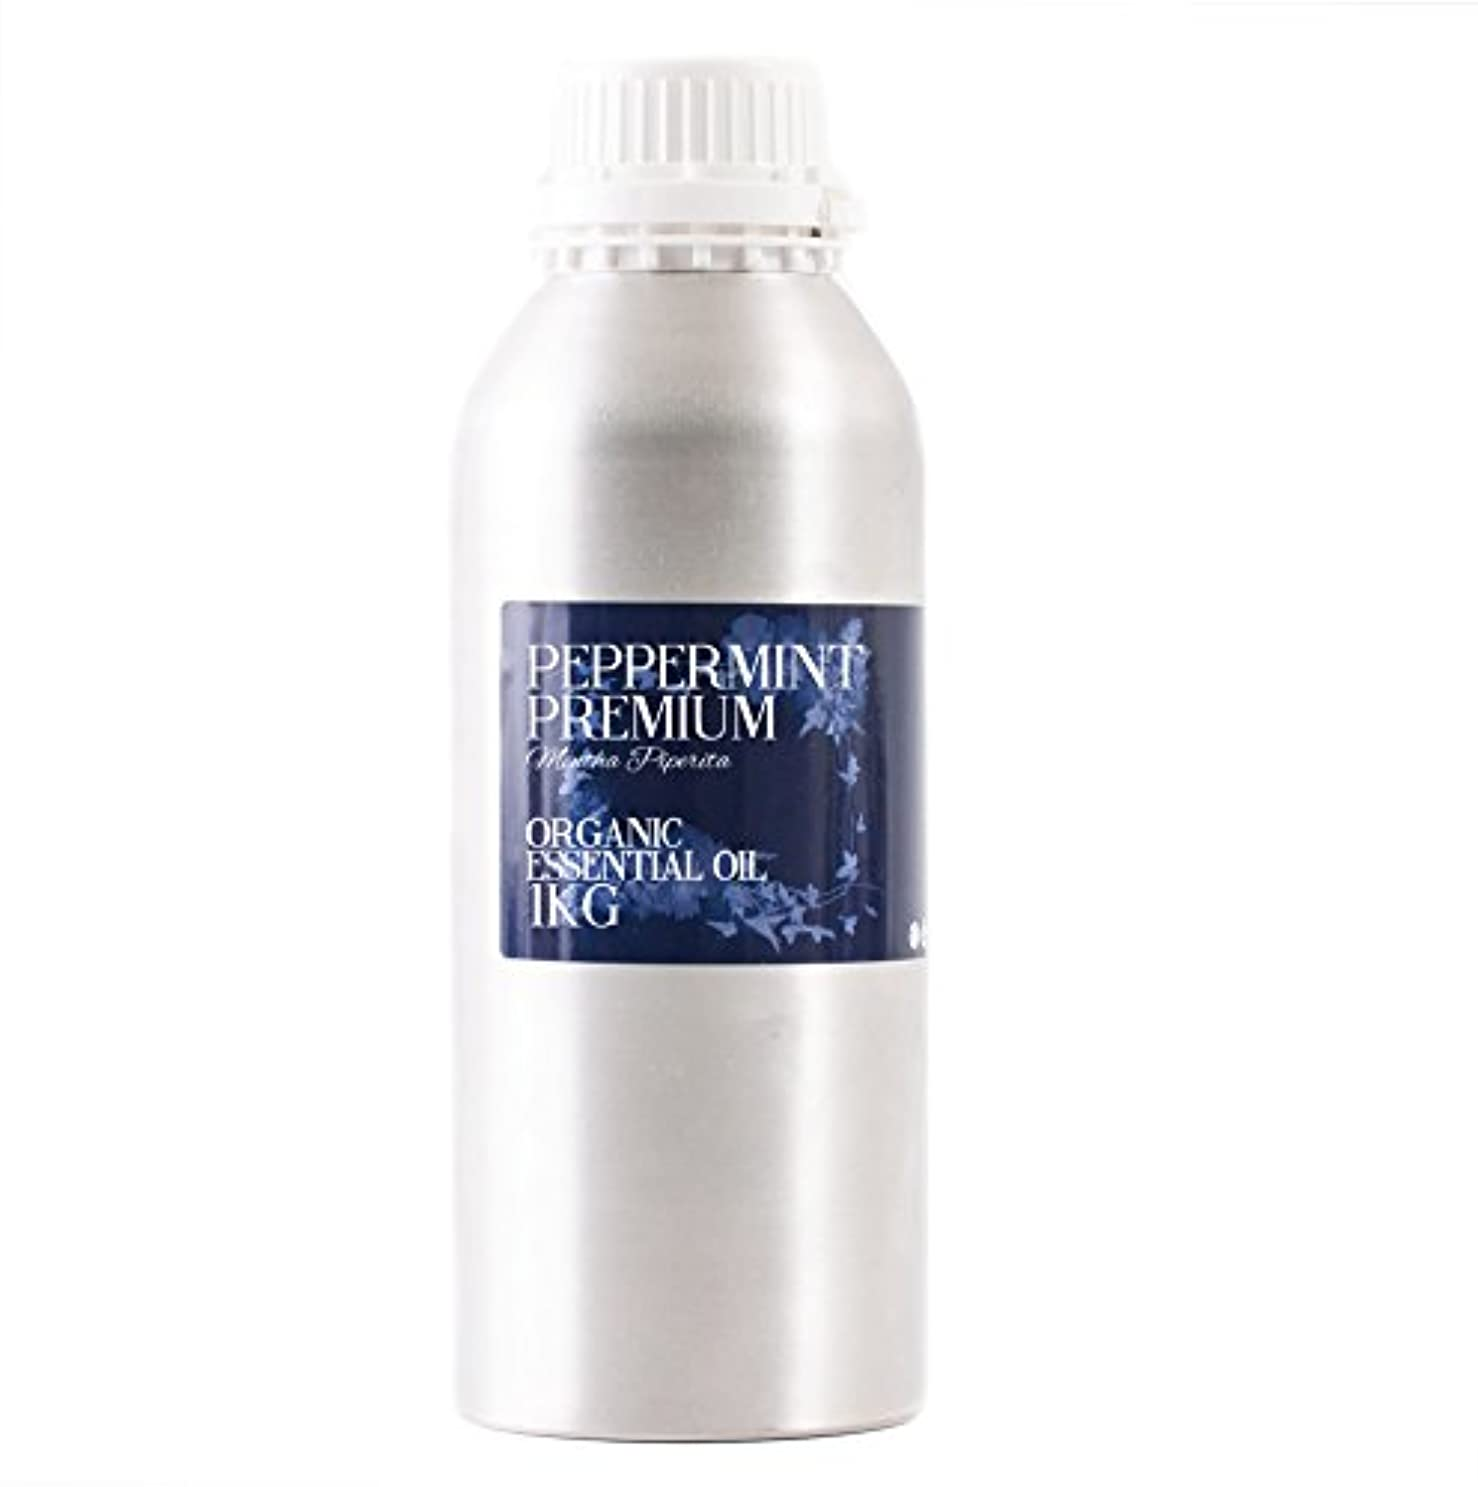 アボートに応じて重力Mystic Moments | Peppermint Premium Organic Essential Oil - 1Kg - 100% Pure